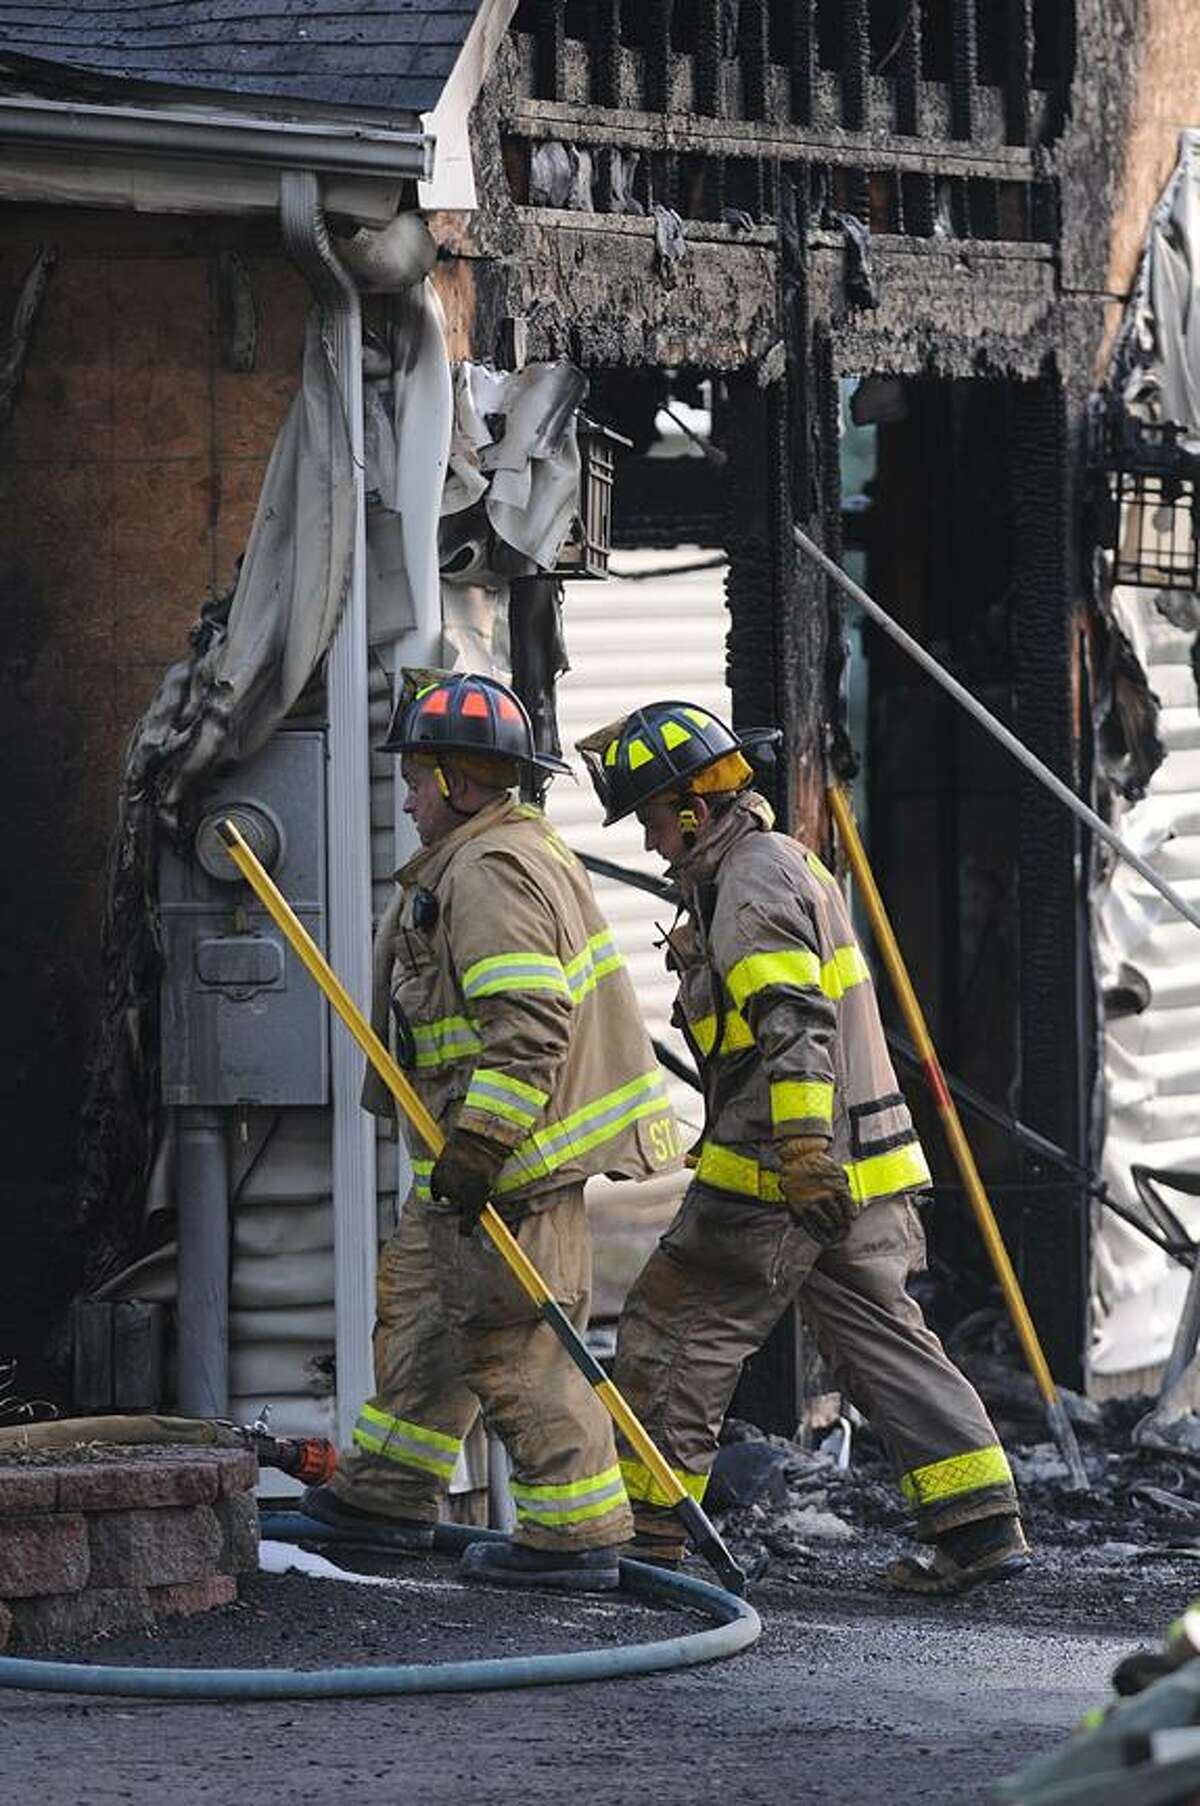 Catherine Avalone - The Middletown Press Firefighters responded around 5:45 p.m. Saturday afternoon to a newer colonial home at 329 Cherry Hill Road in Middlefield. Police said the fire started as a result of a car parked in the garage.